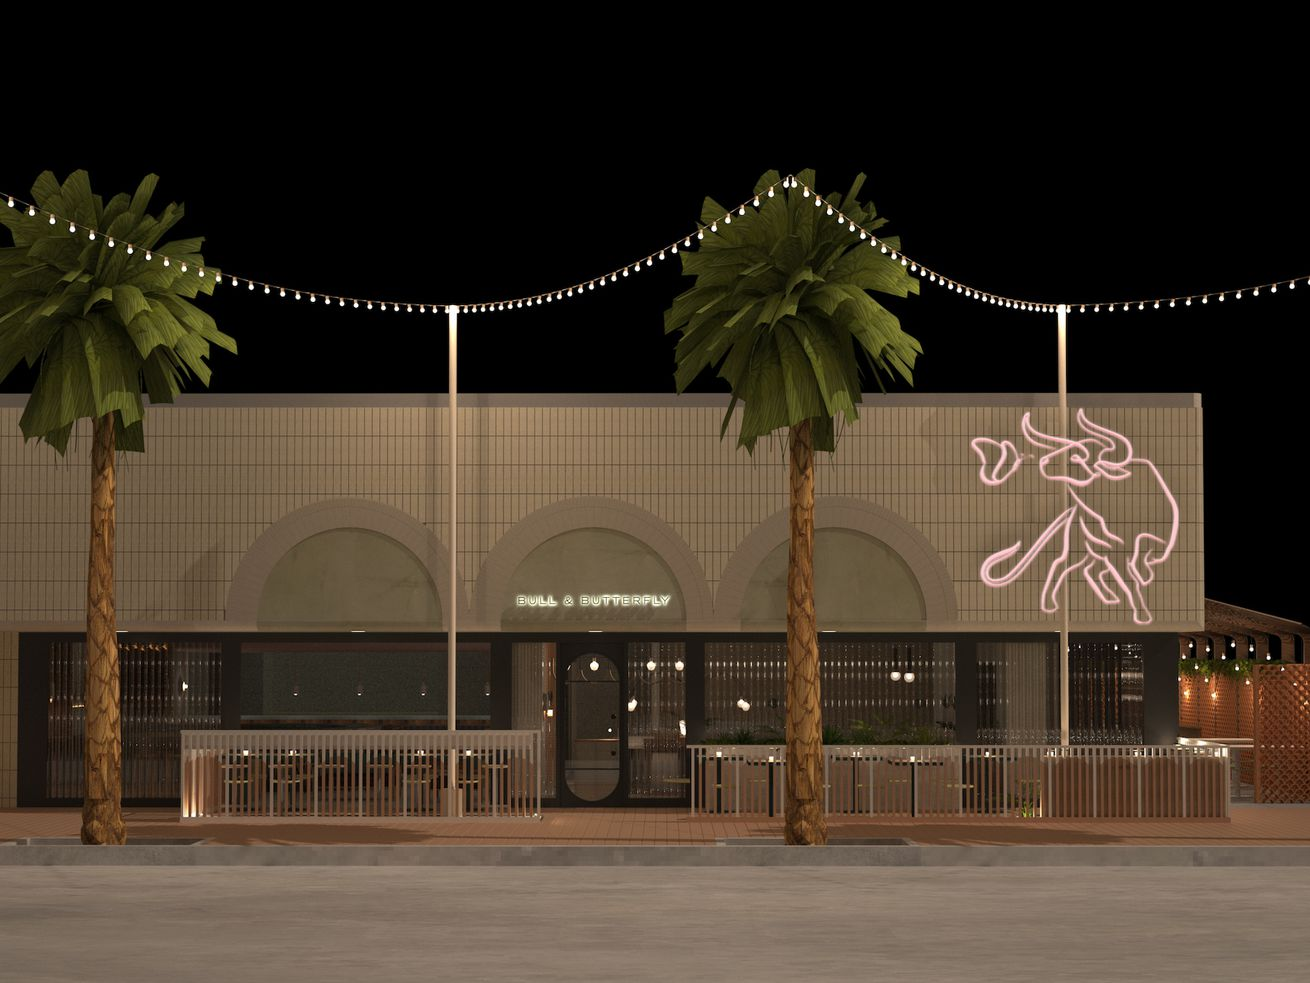 bull and butterfly steakhouse rendering beach